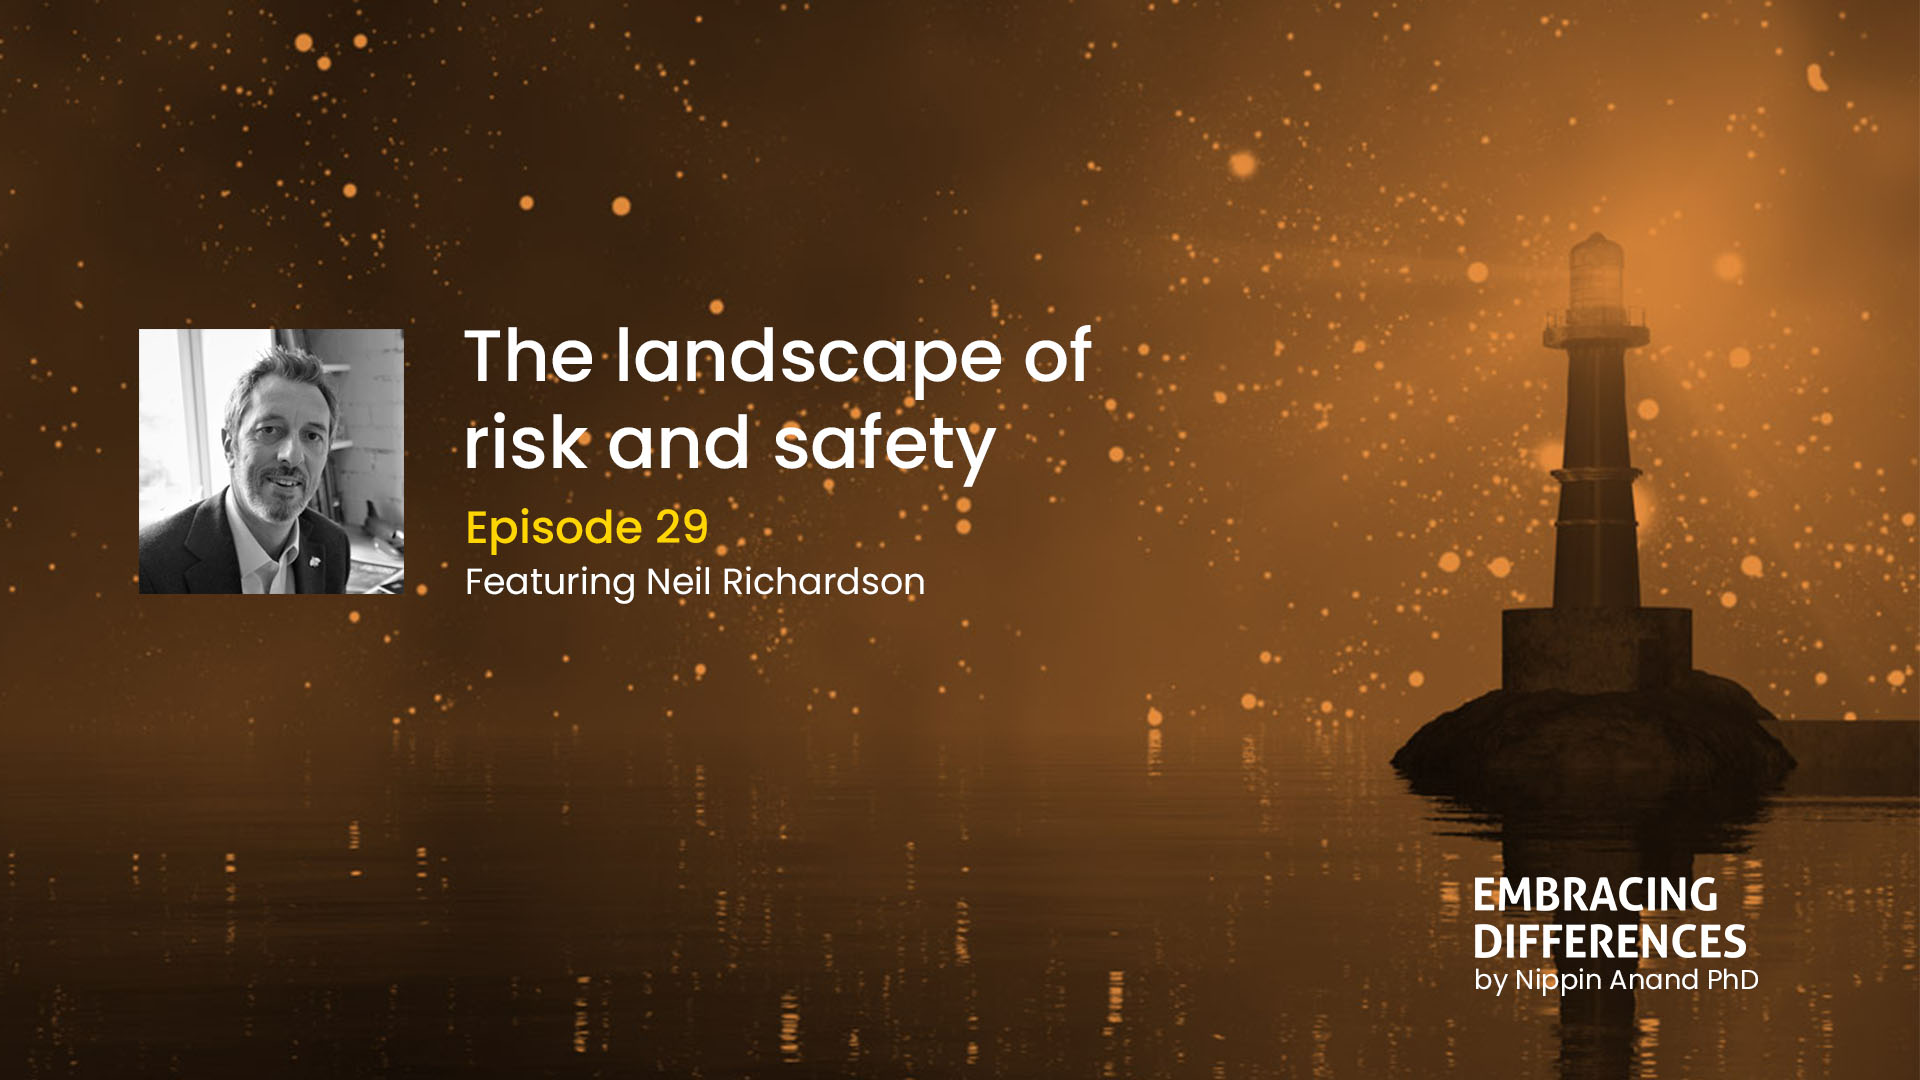 The landscape of risk and safety with Neil Richardson